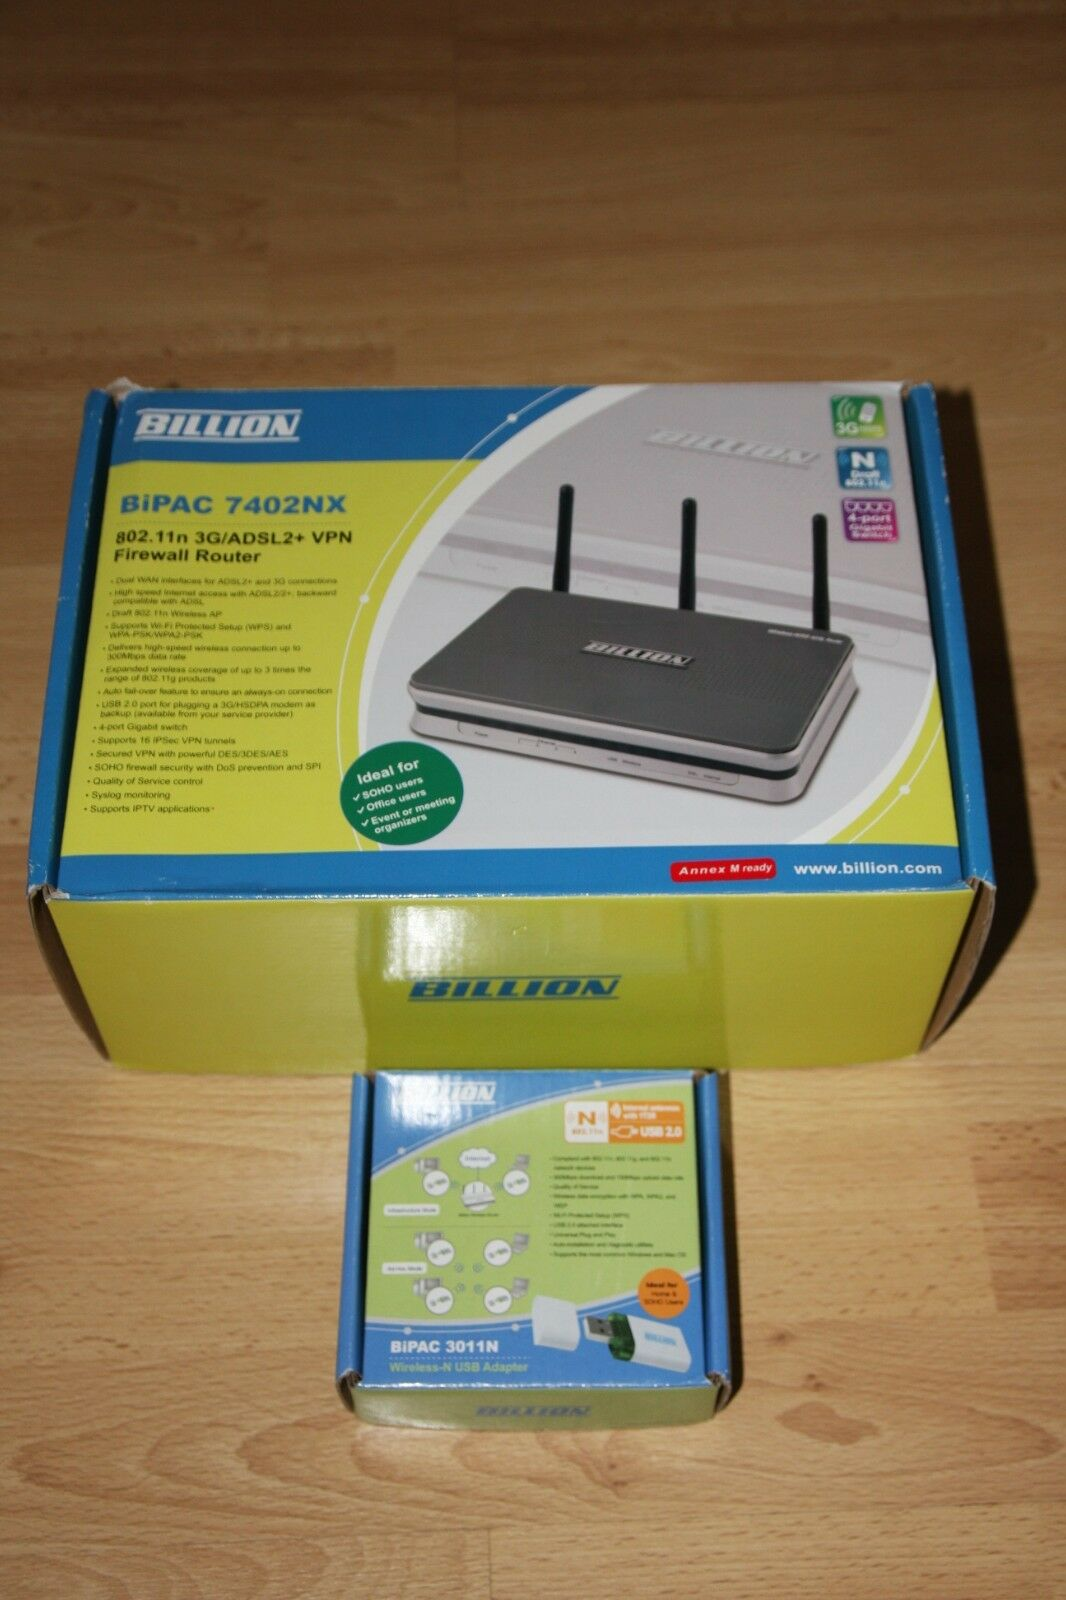 NEW DRIVERS: BILLION USB 3011N WIRELESS-N